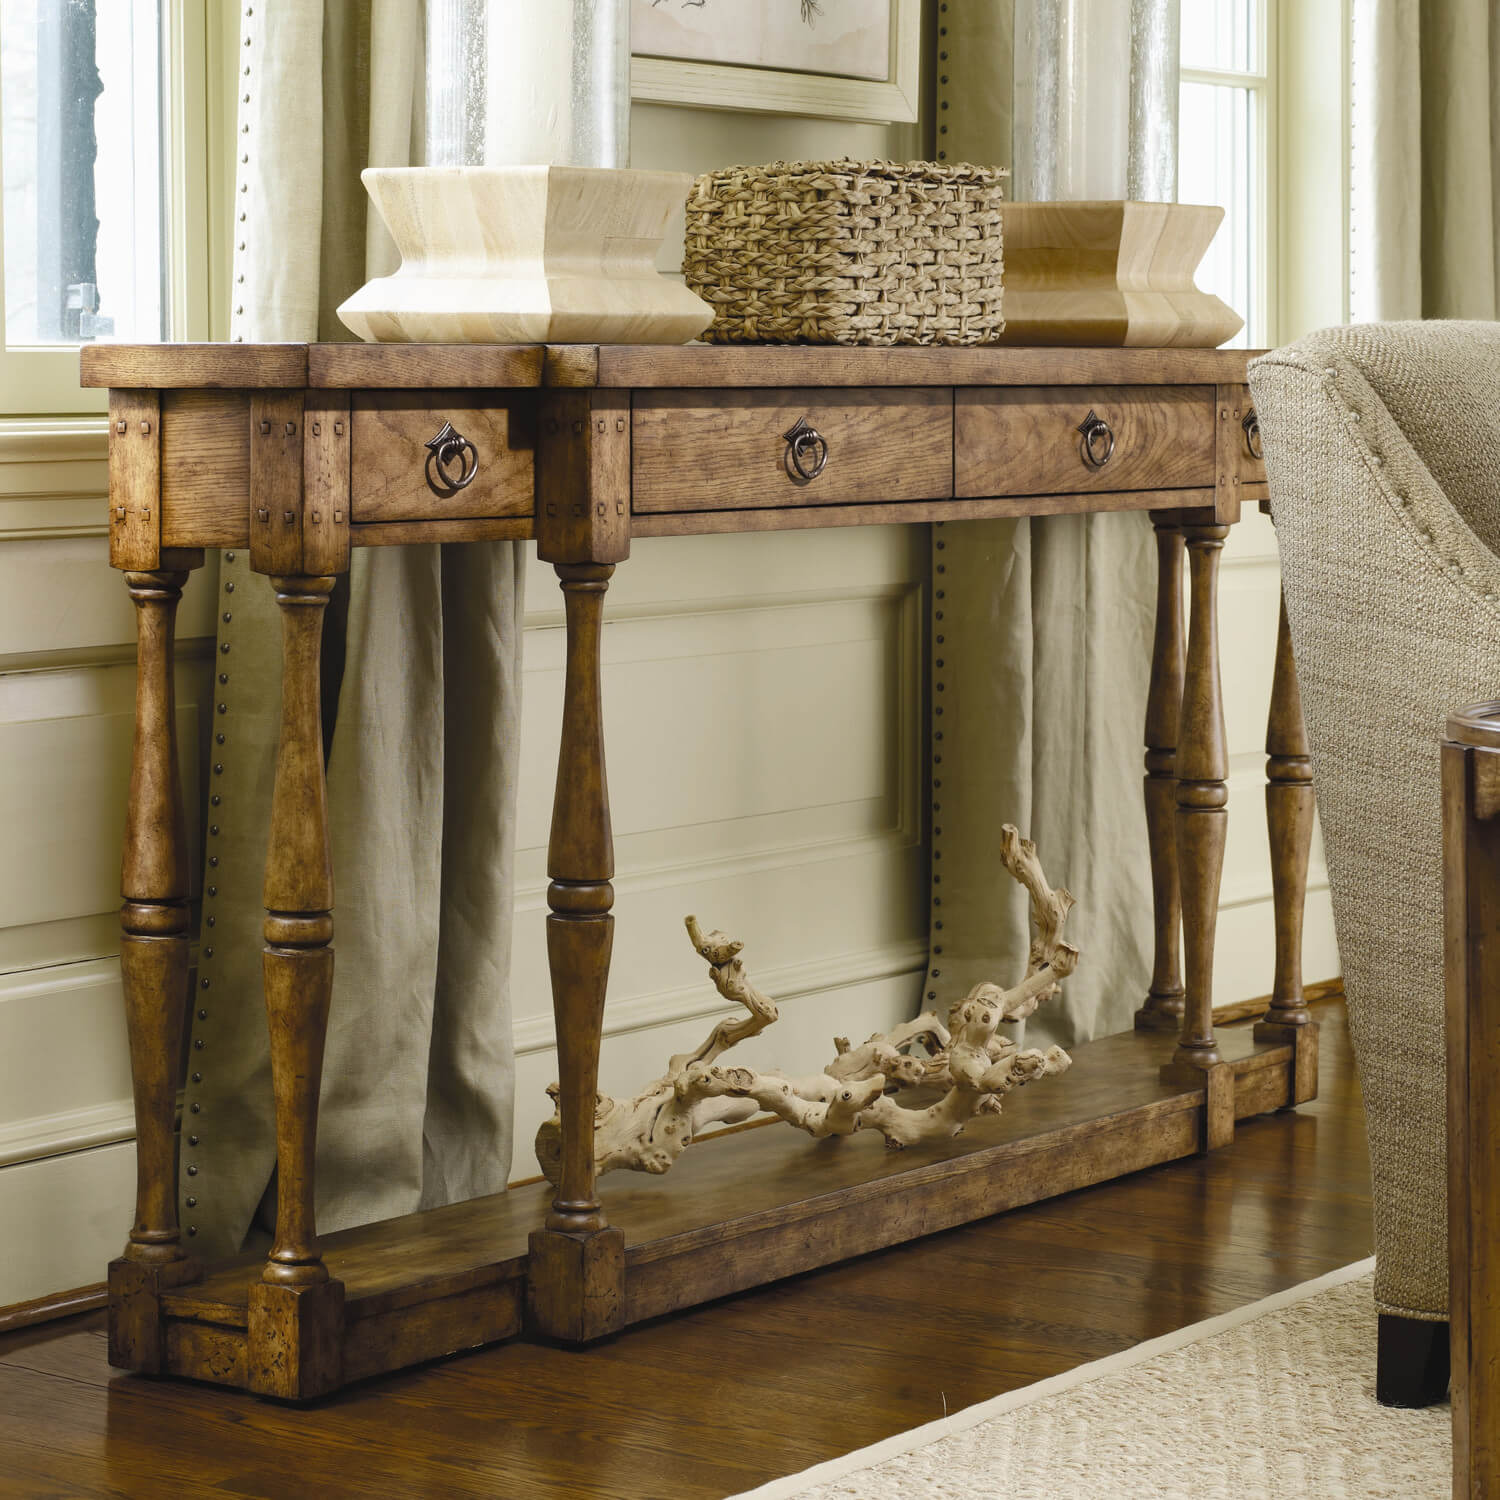 Rivets and other structural elements are visible on this wooden table, which gives it a more dated, rustic feel, while still remaining an elegant carved piece of furniture.